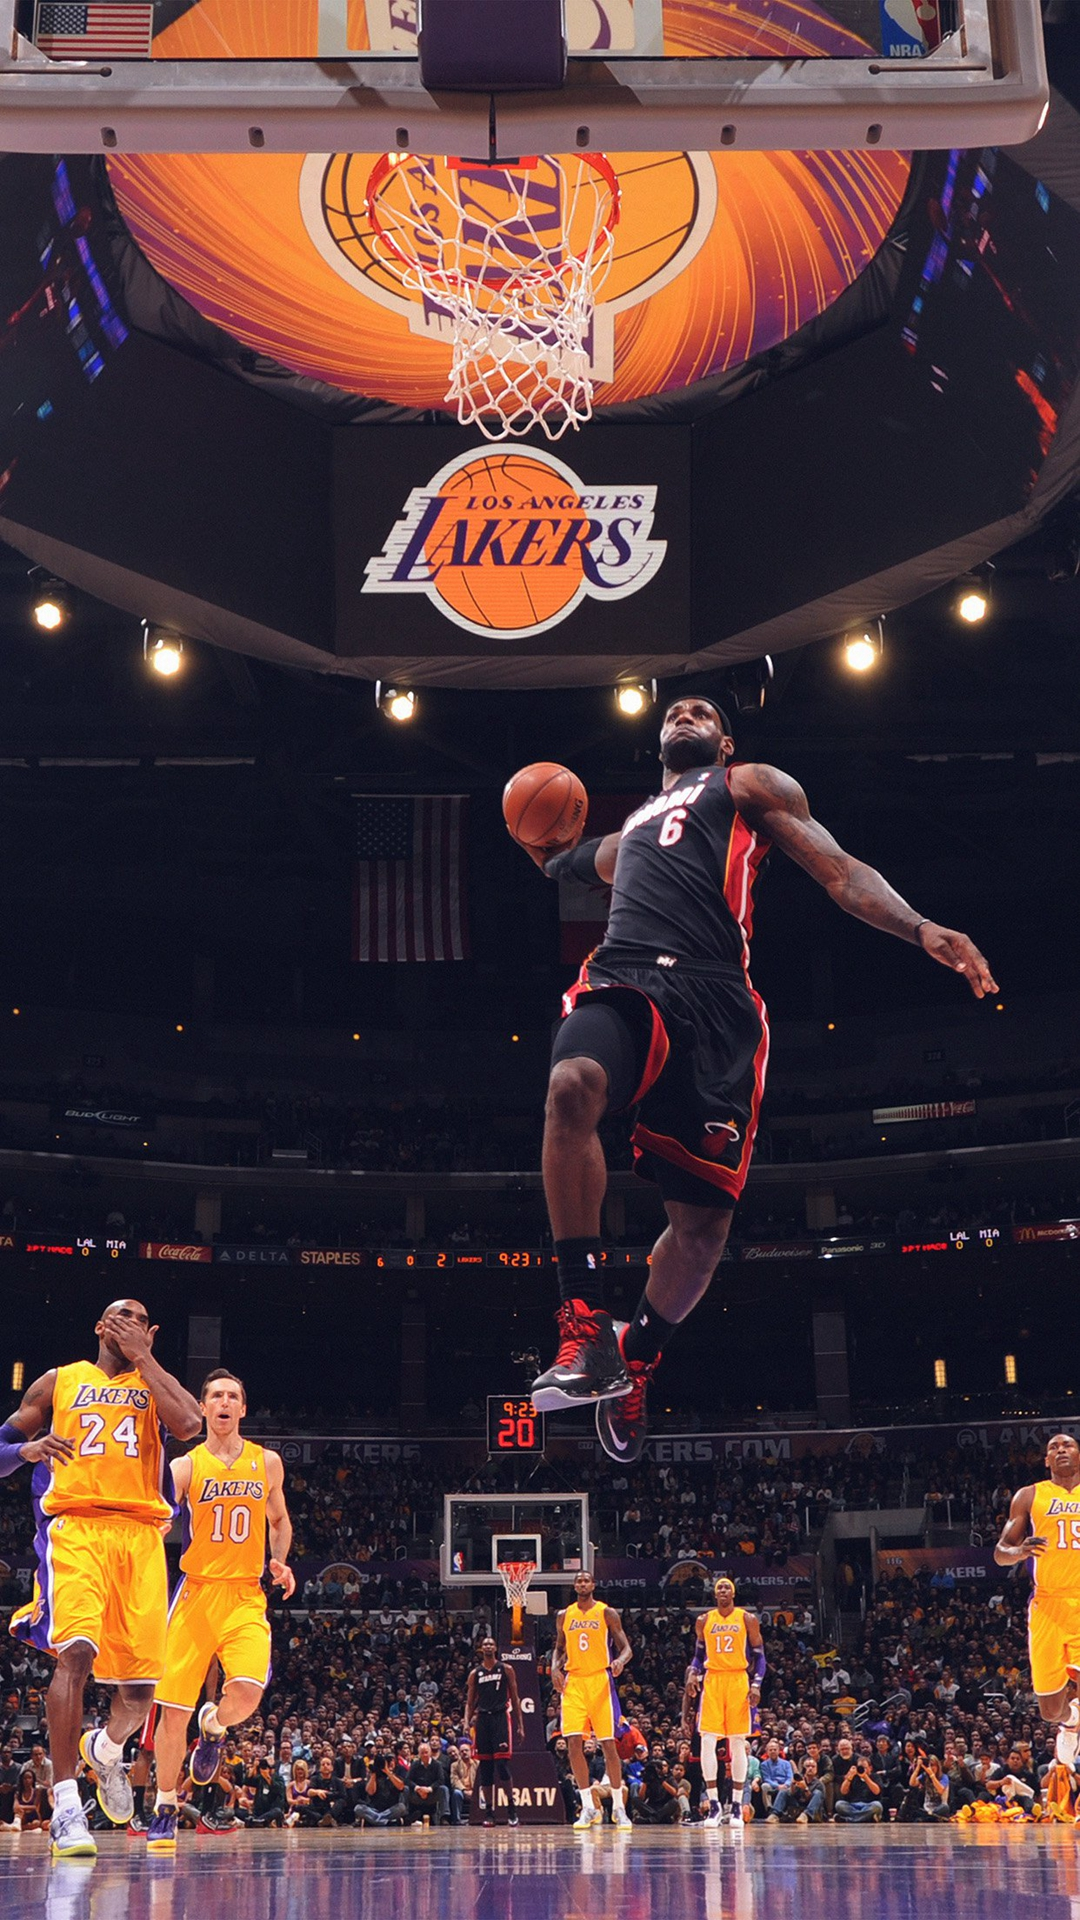 Kobe Bryant Dunk On Lebron James Wallpaper Full Hd Is Cool Wallpapers